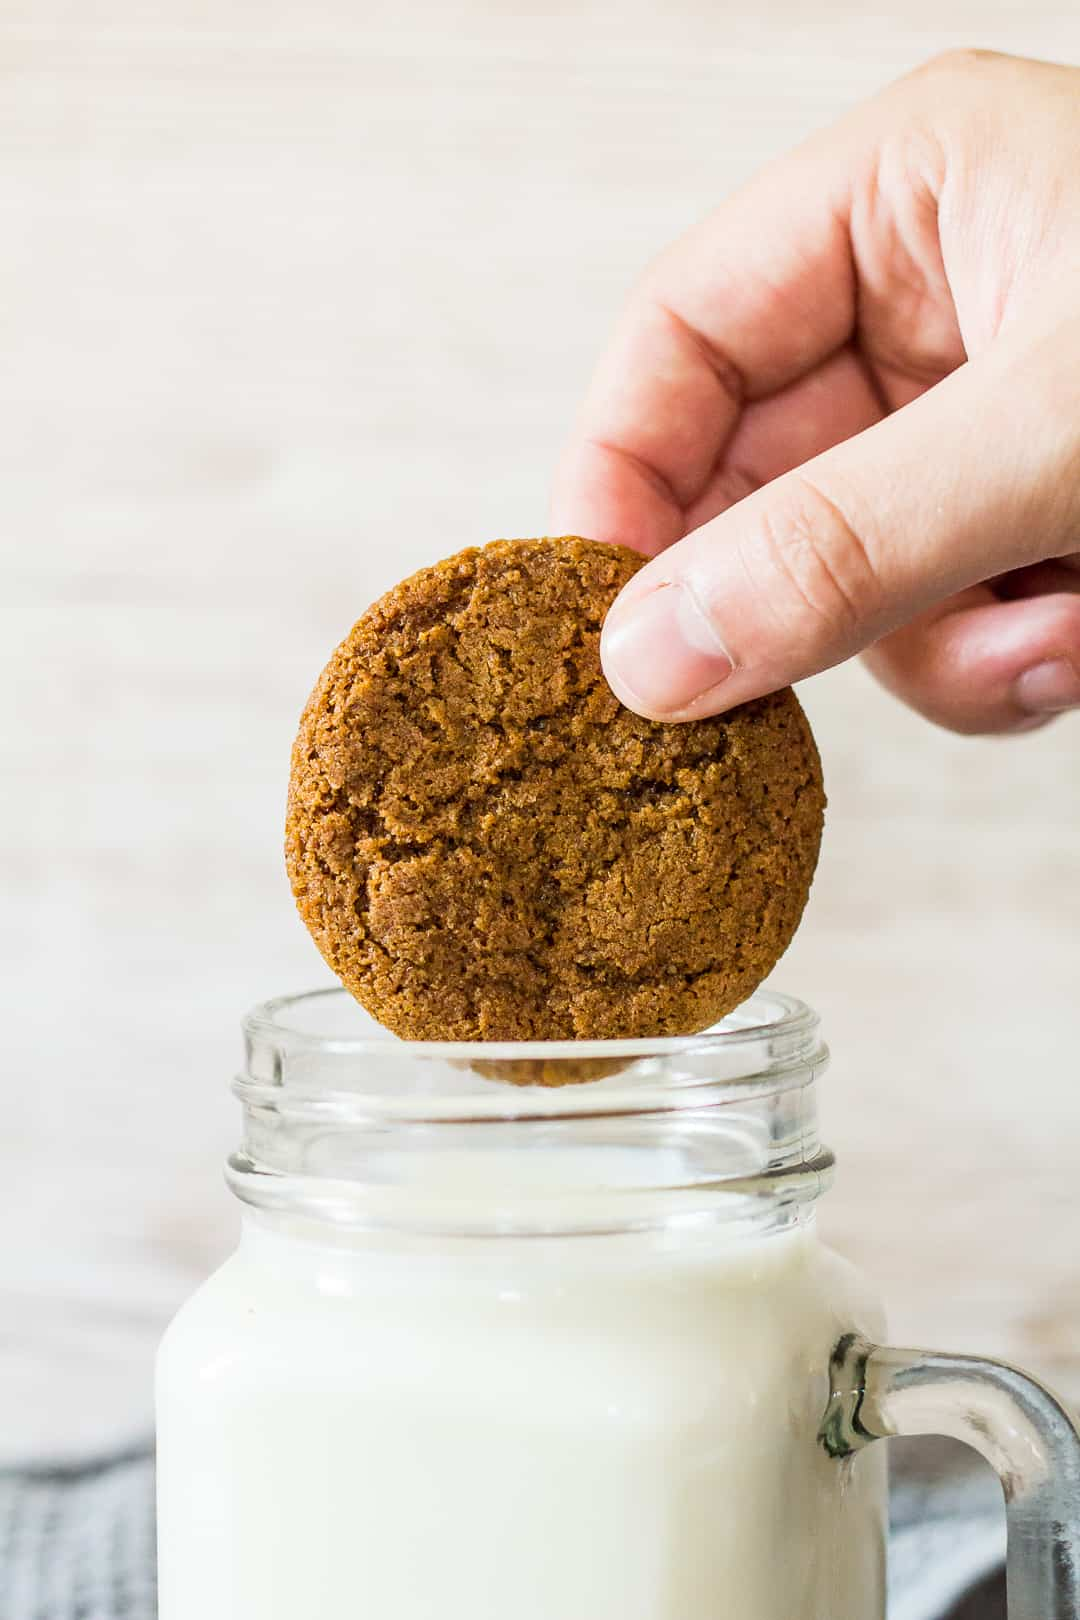 A Homemade Gingernut Cookie being dunked into a glass of milk.